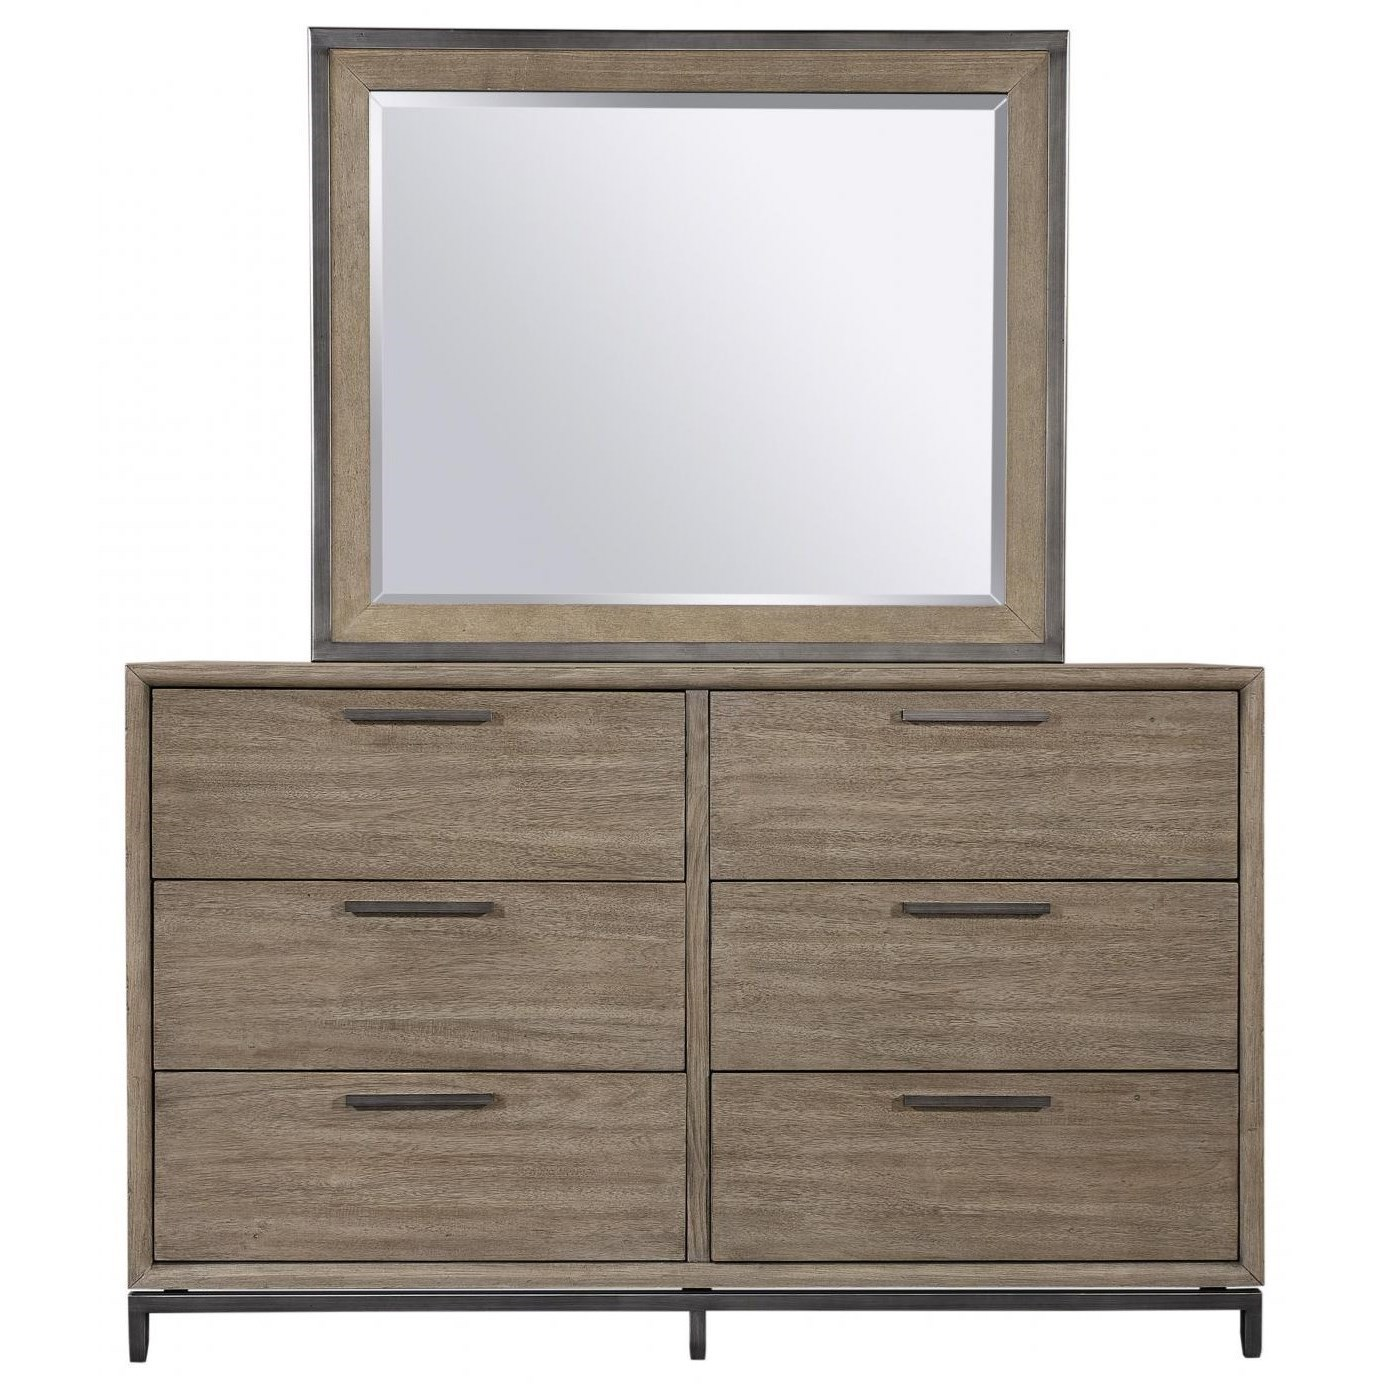 Transitional Dresser and Mirror Set with Felt-Lined Top Drawers